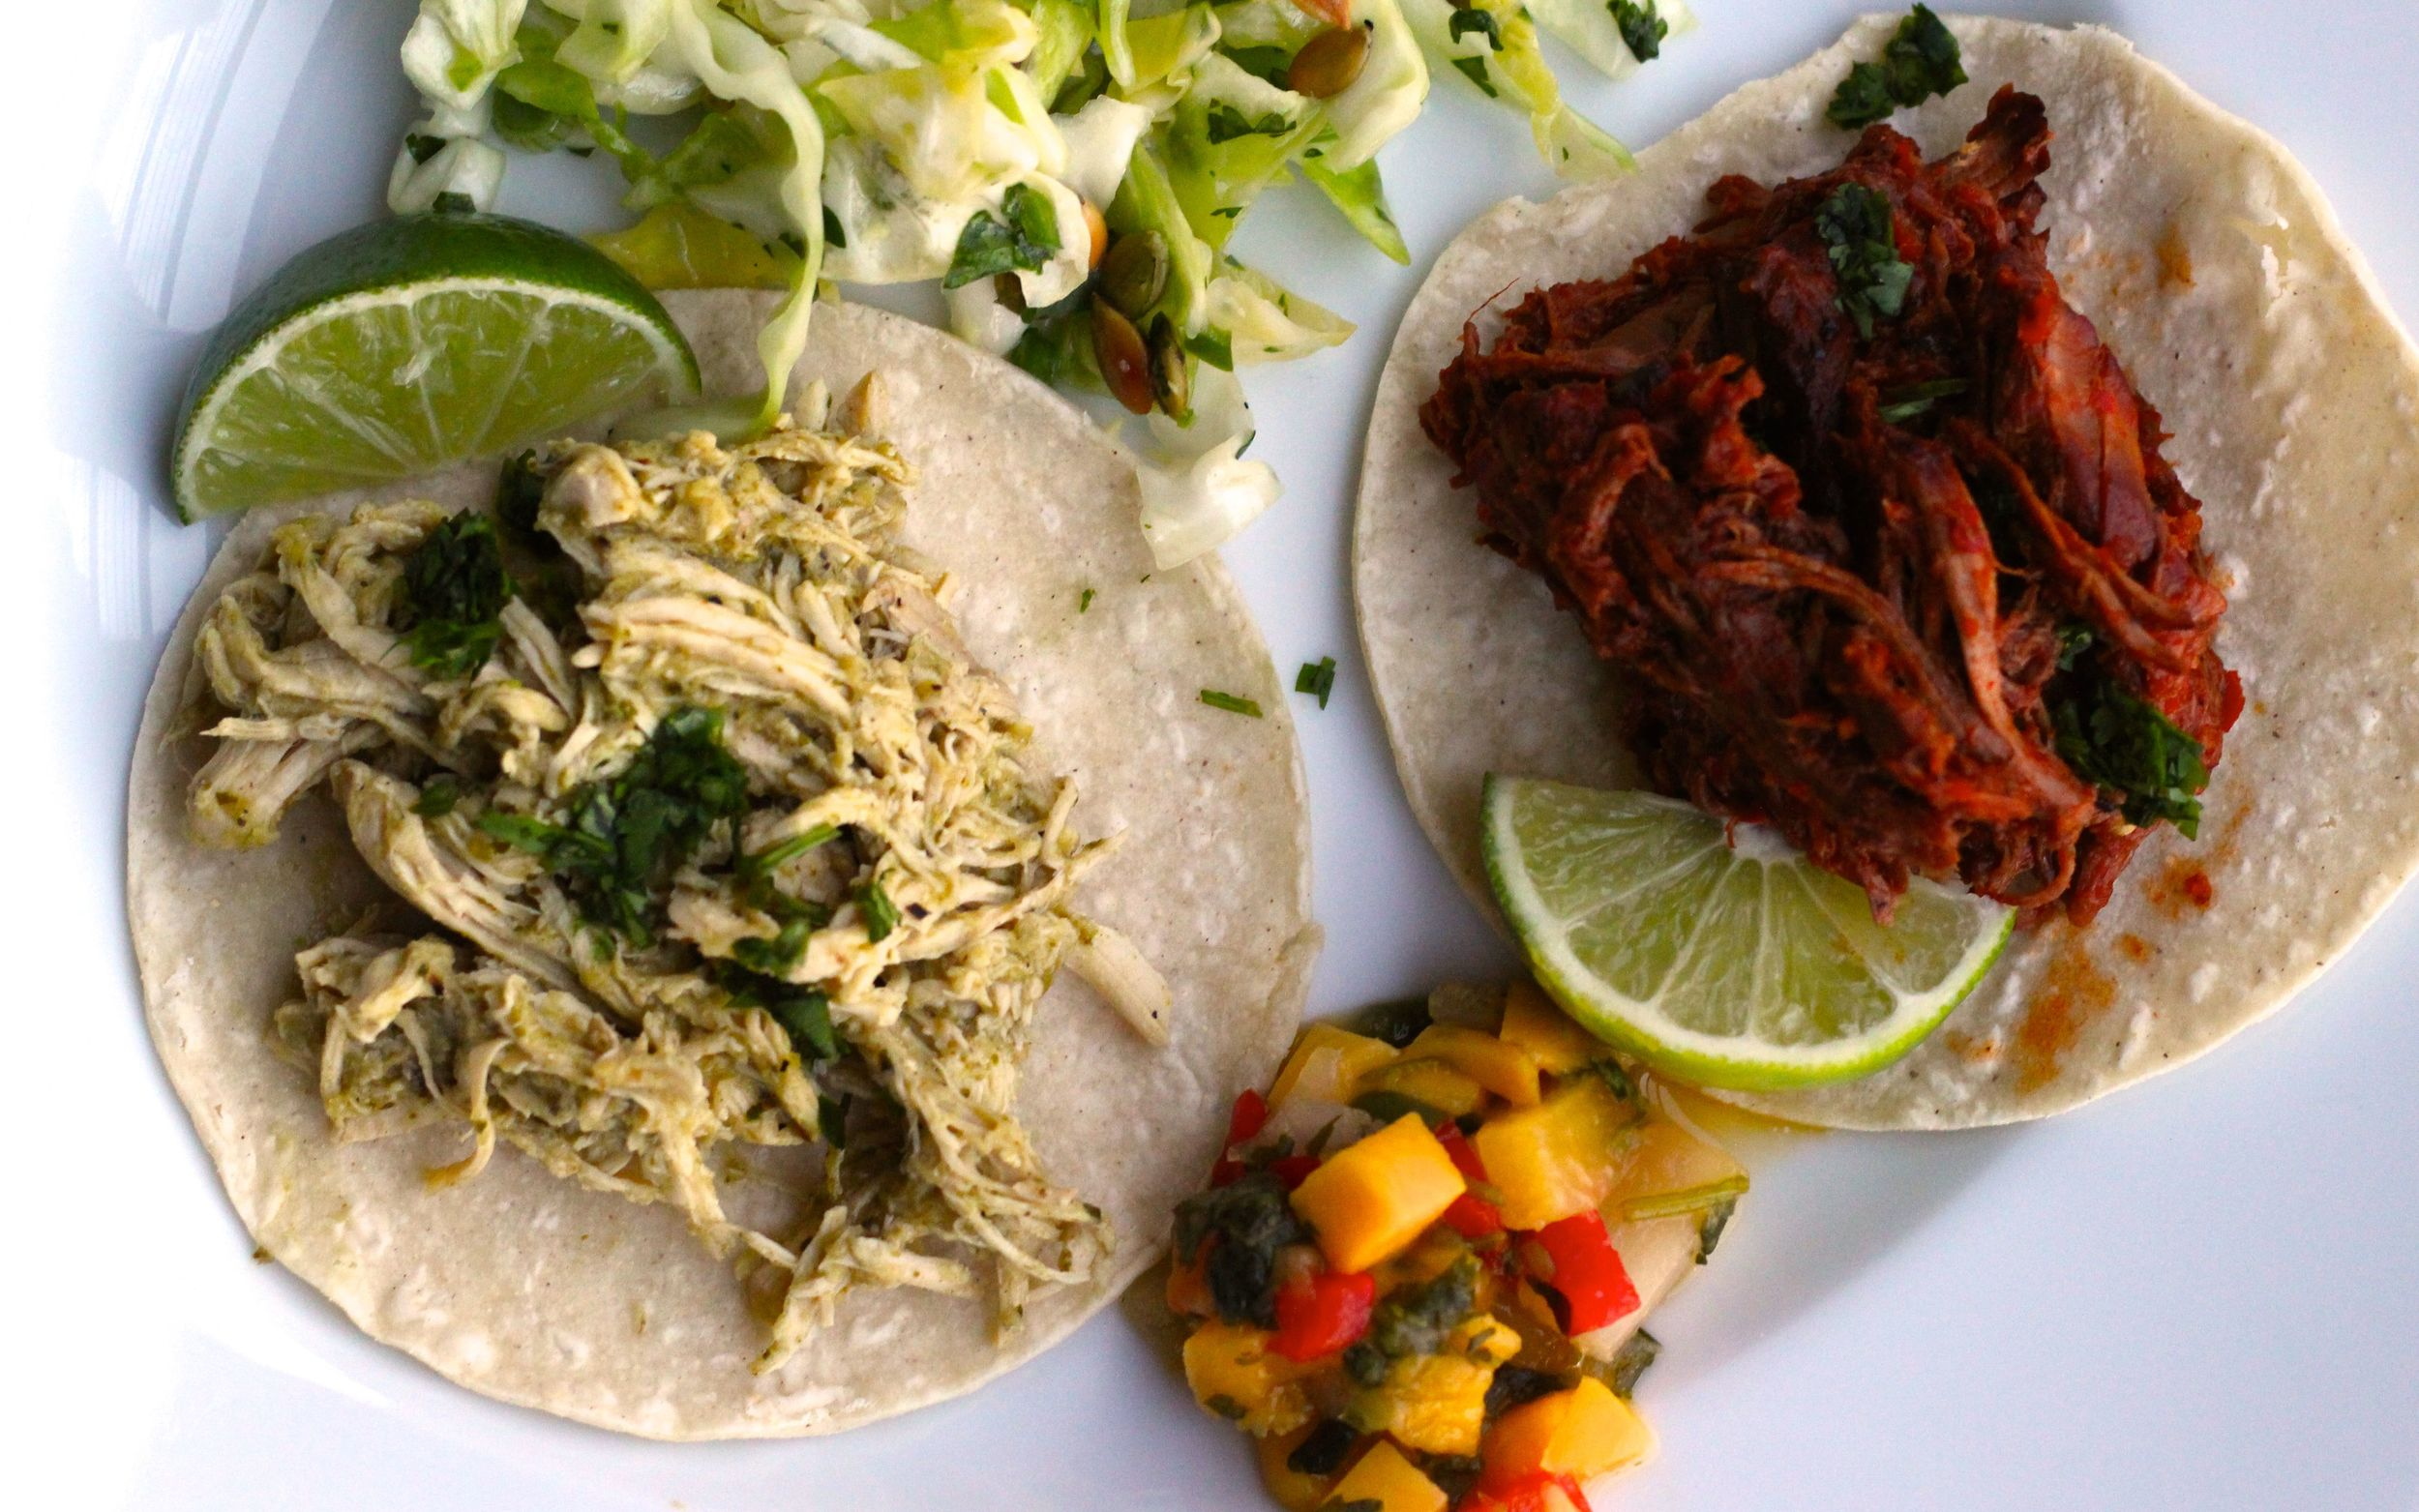 Chicken tacos in green chile sauce and beef tacos in red chile sauce